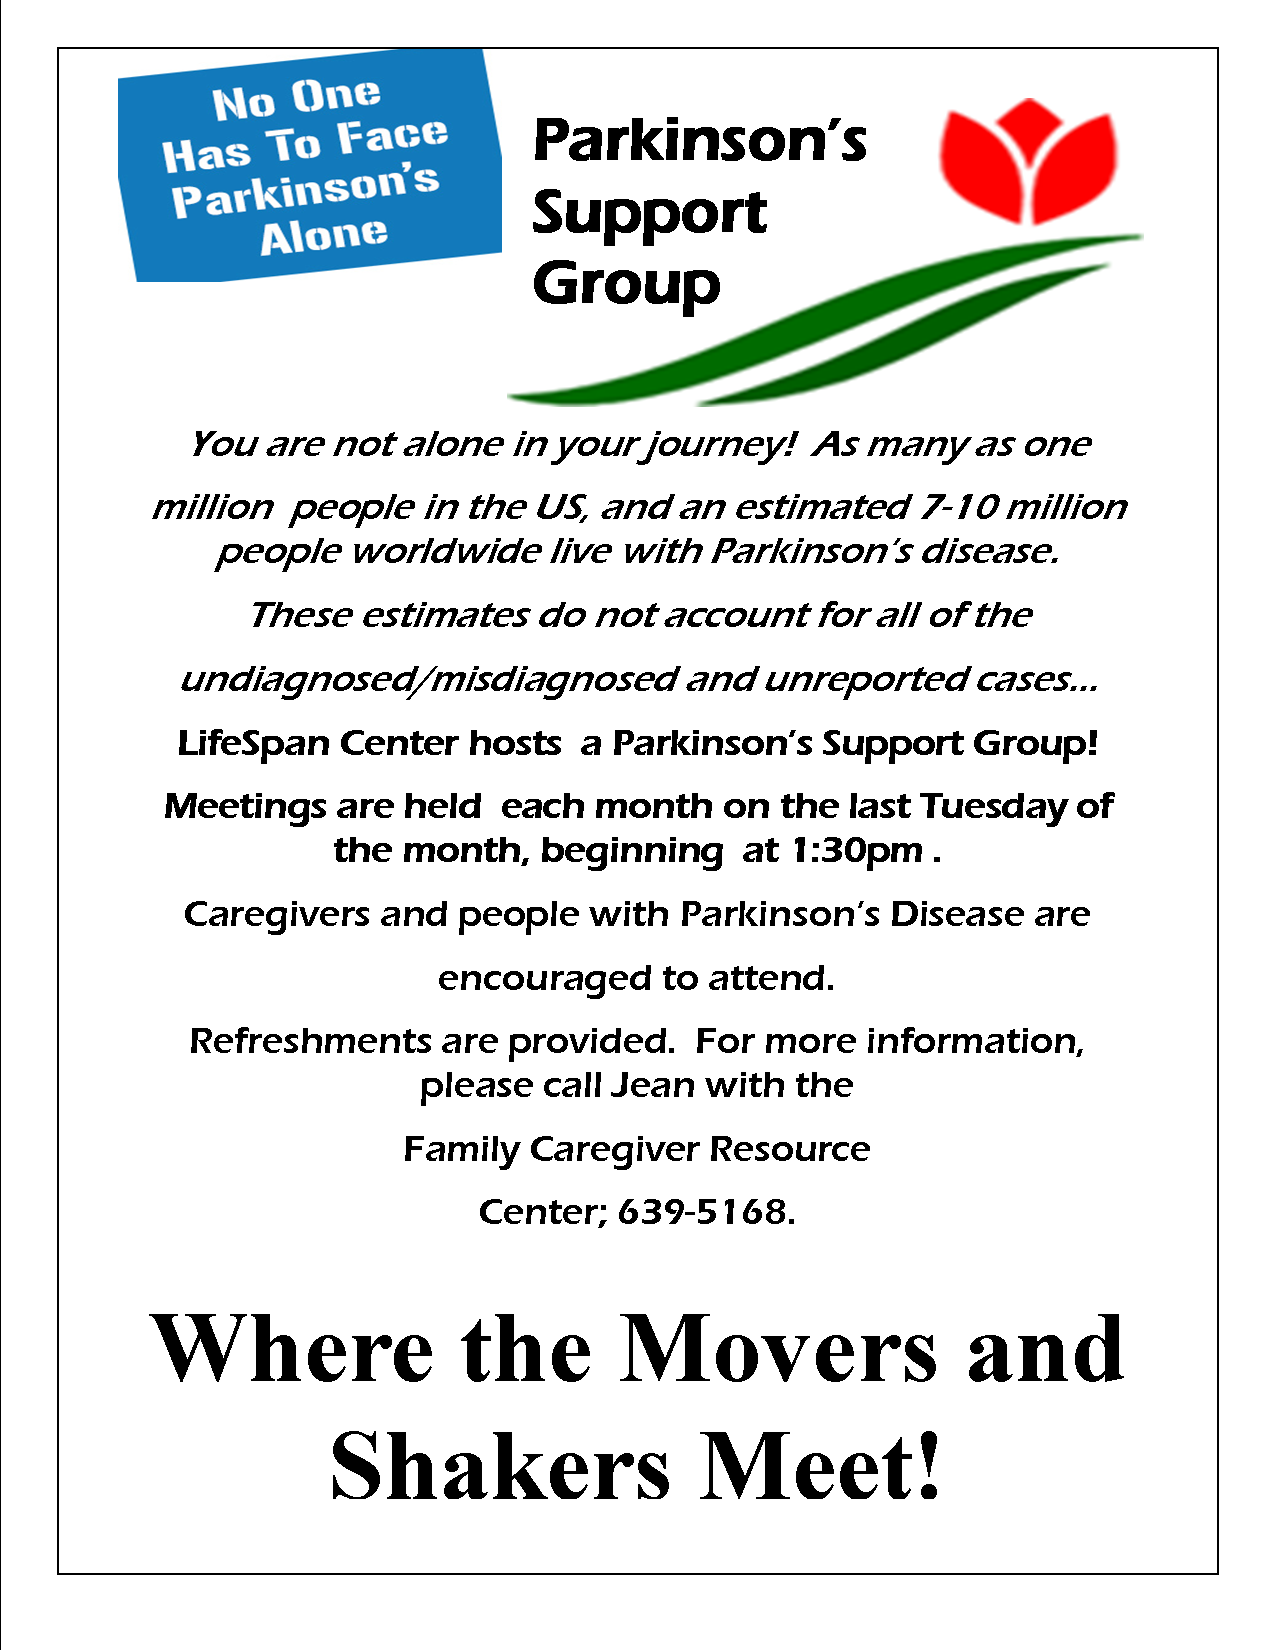 Parkinsons_Support_Group_flyer.png